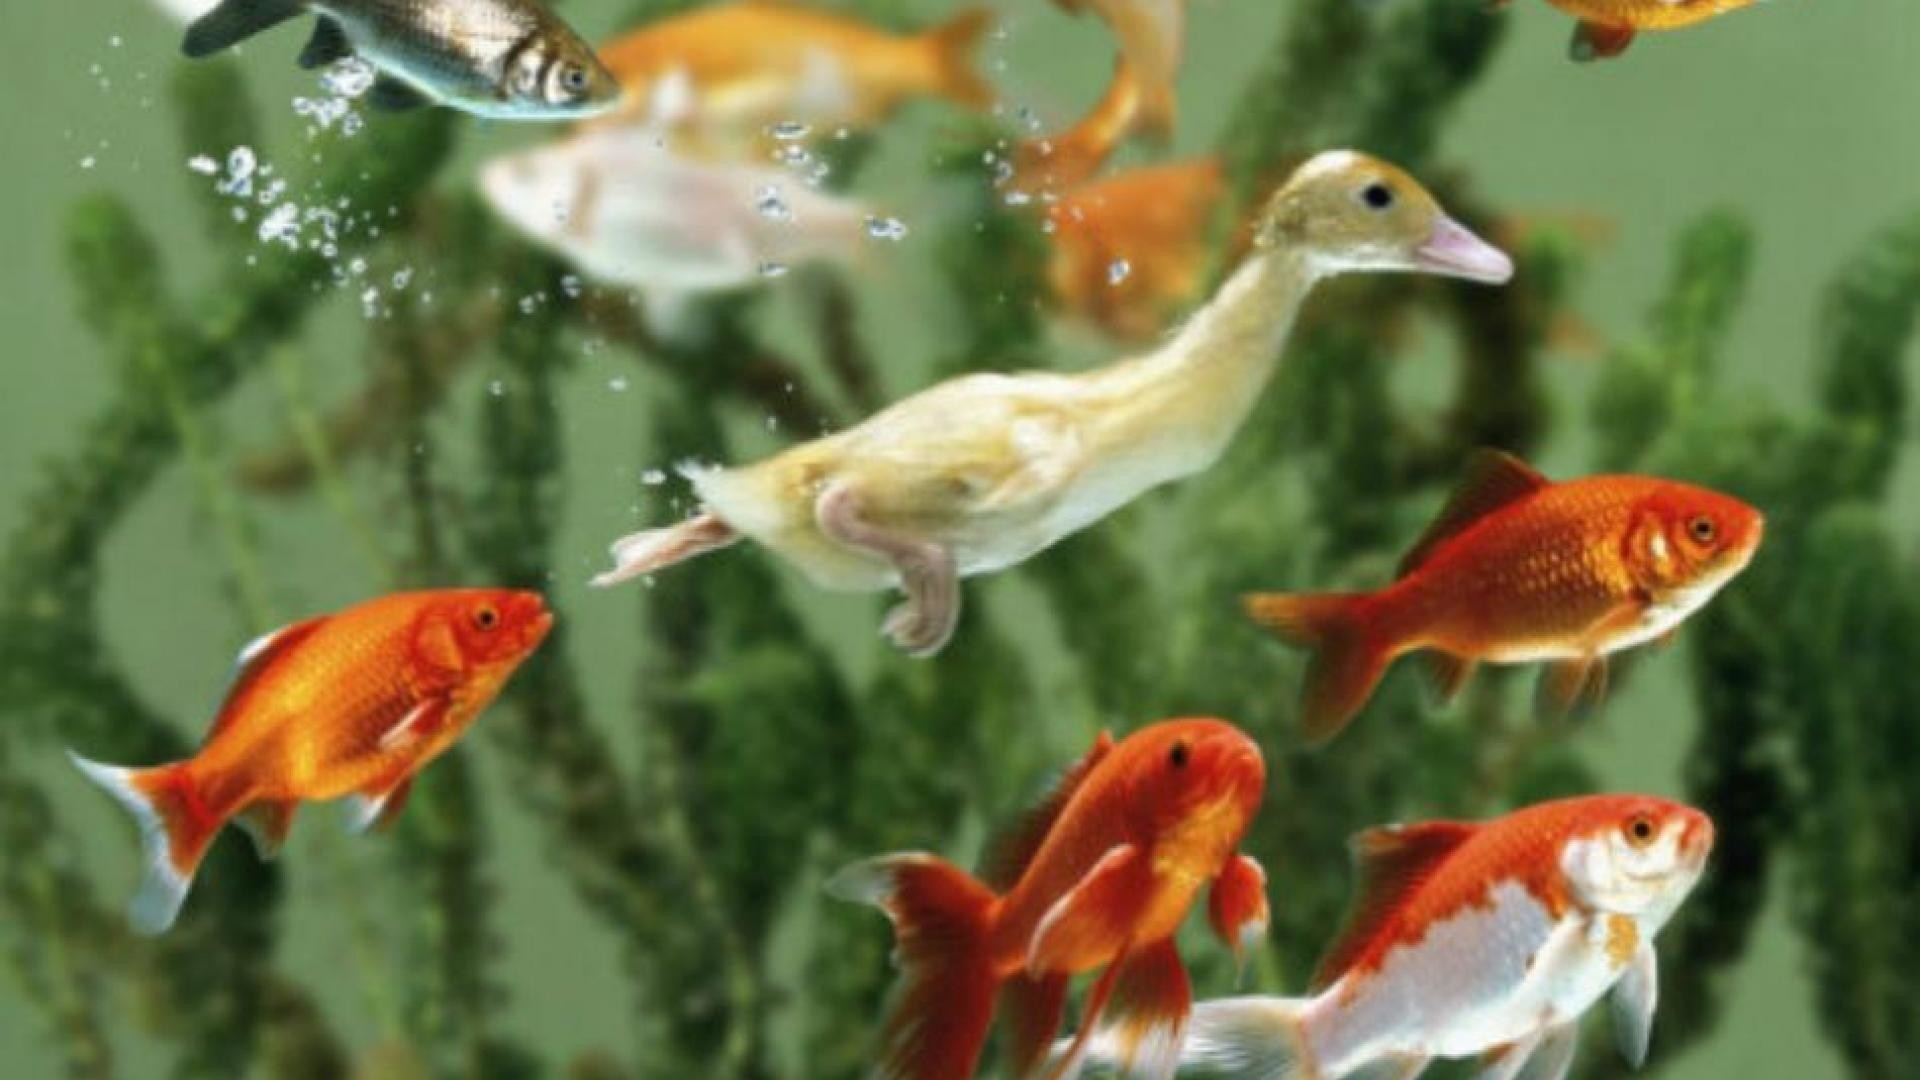 Res: 1920x1080, SWIMS UNDERWATER AMONG GOLDFISH WALLPAPER 60600 HD Wallpapers